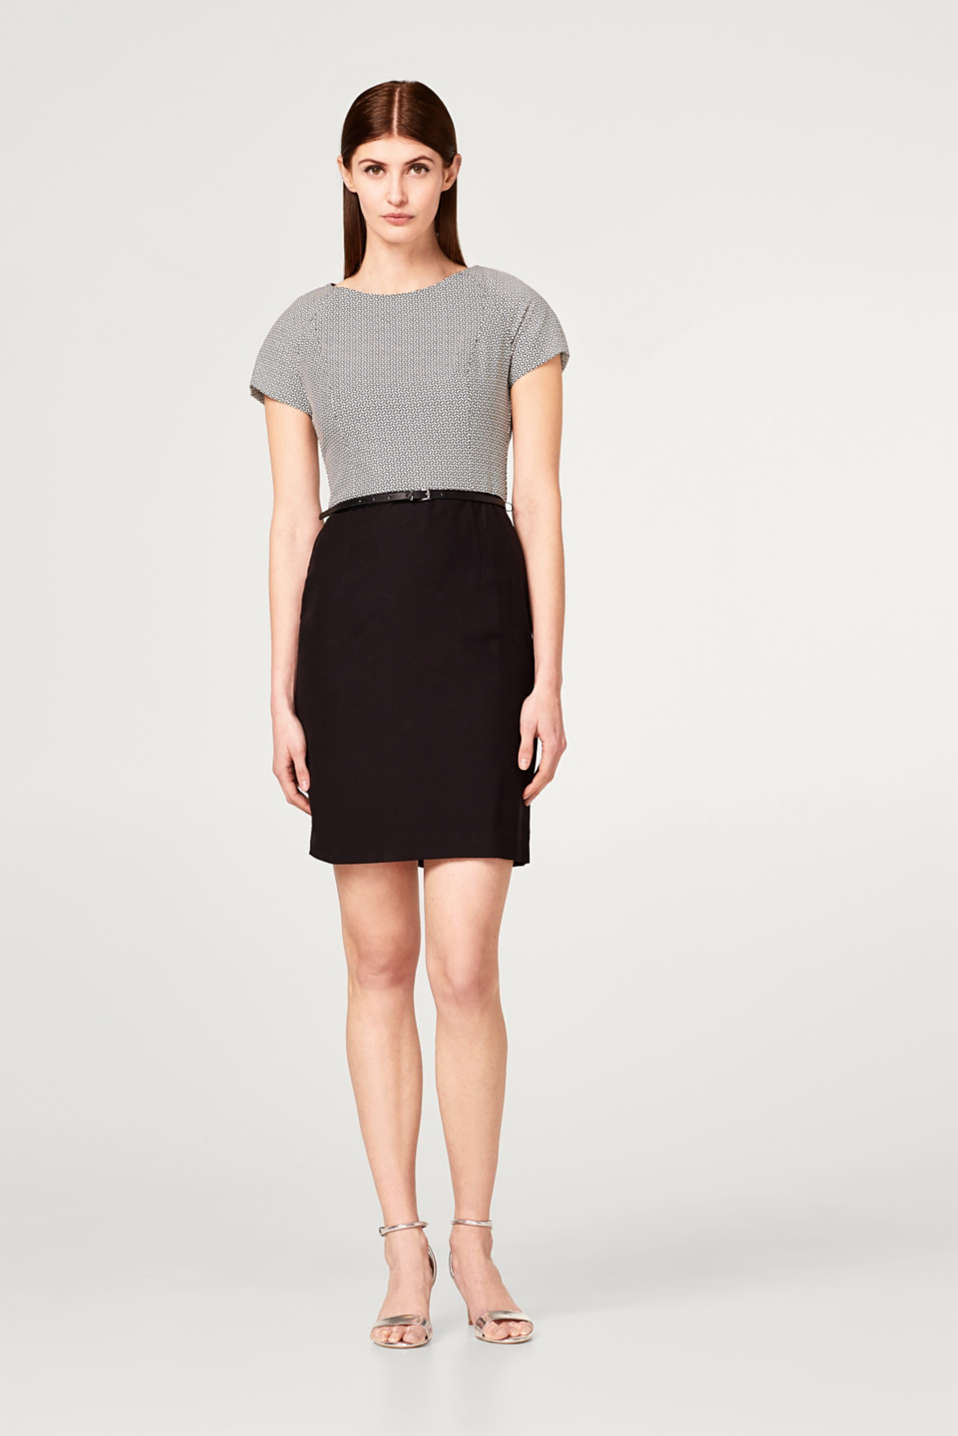 Super stretchy sheath dress with a belt